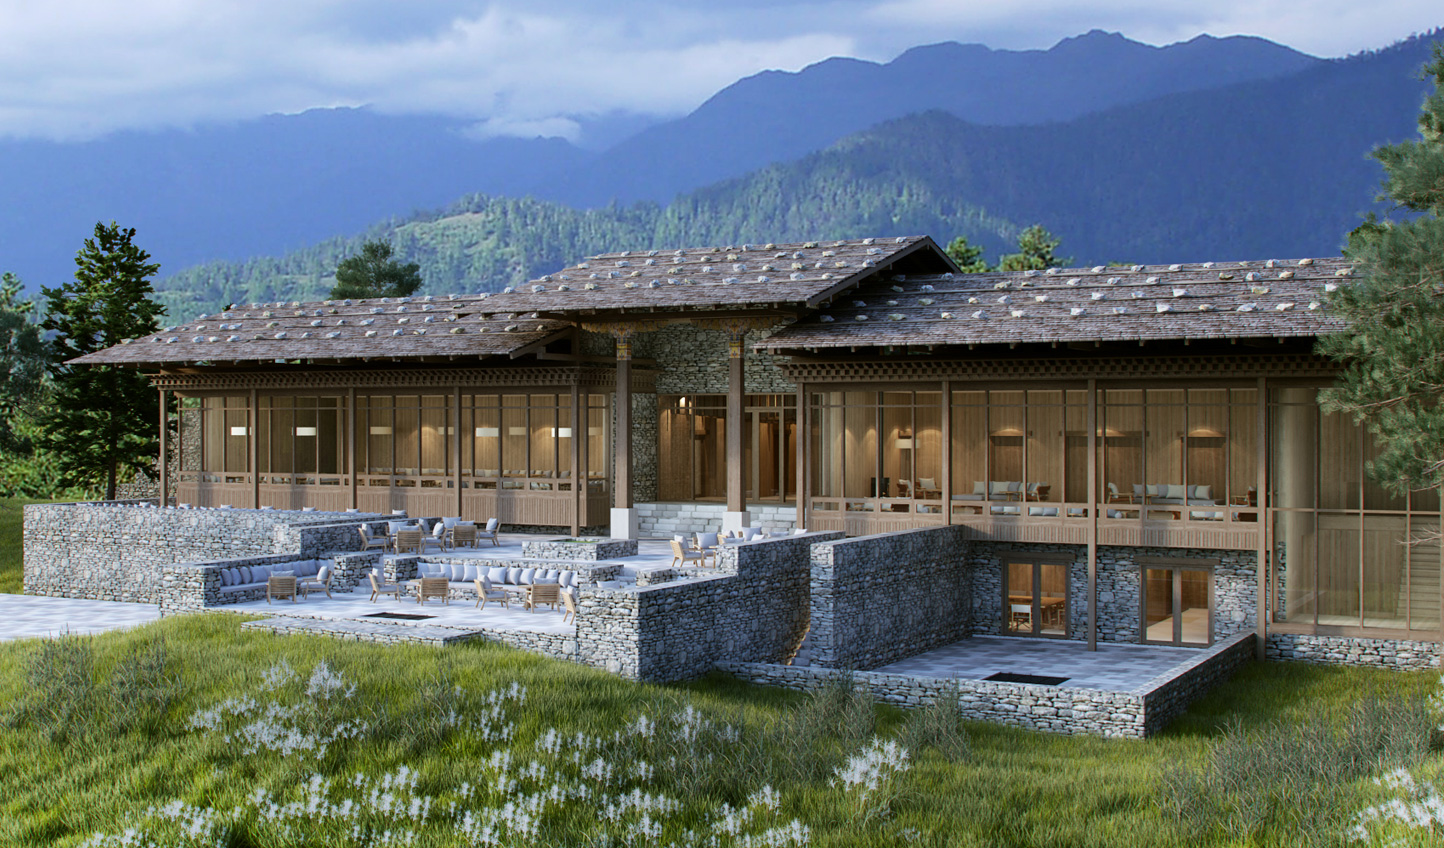 An architectural masterpiece awaits at Six Senses Paro